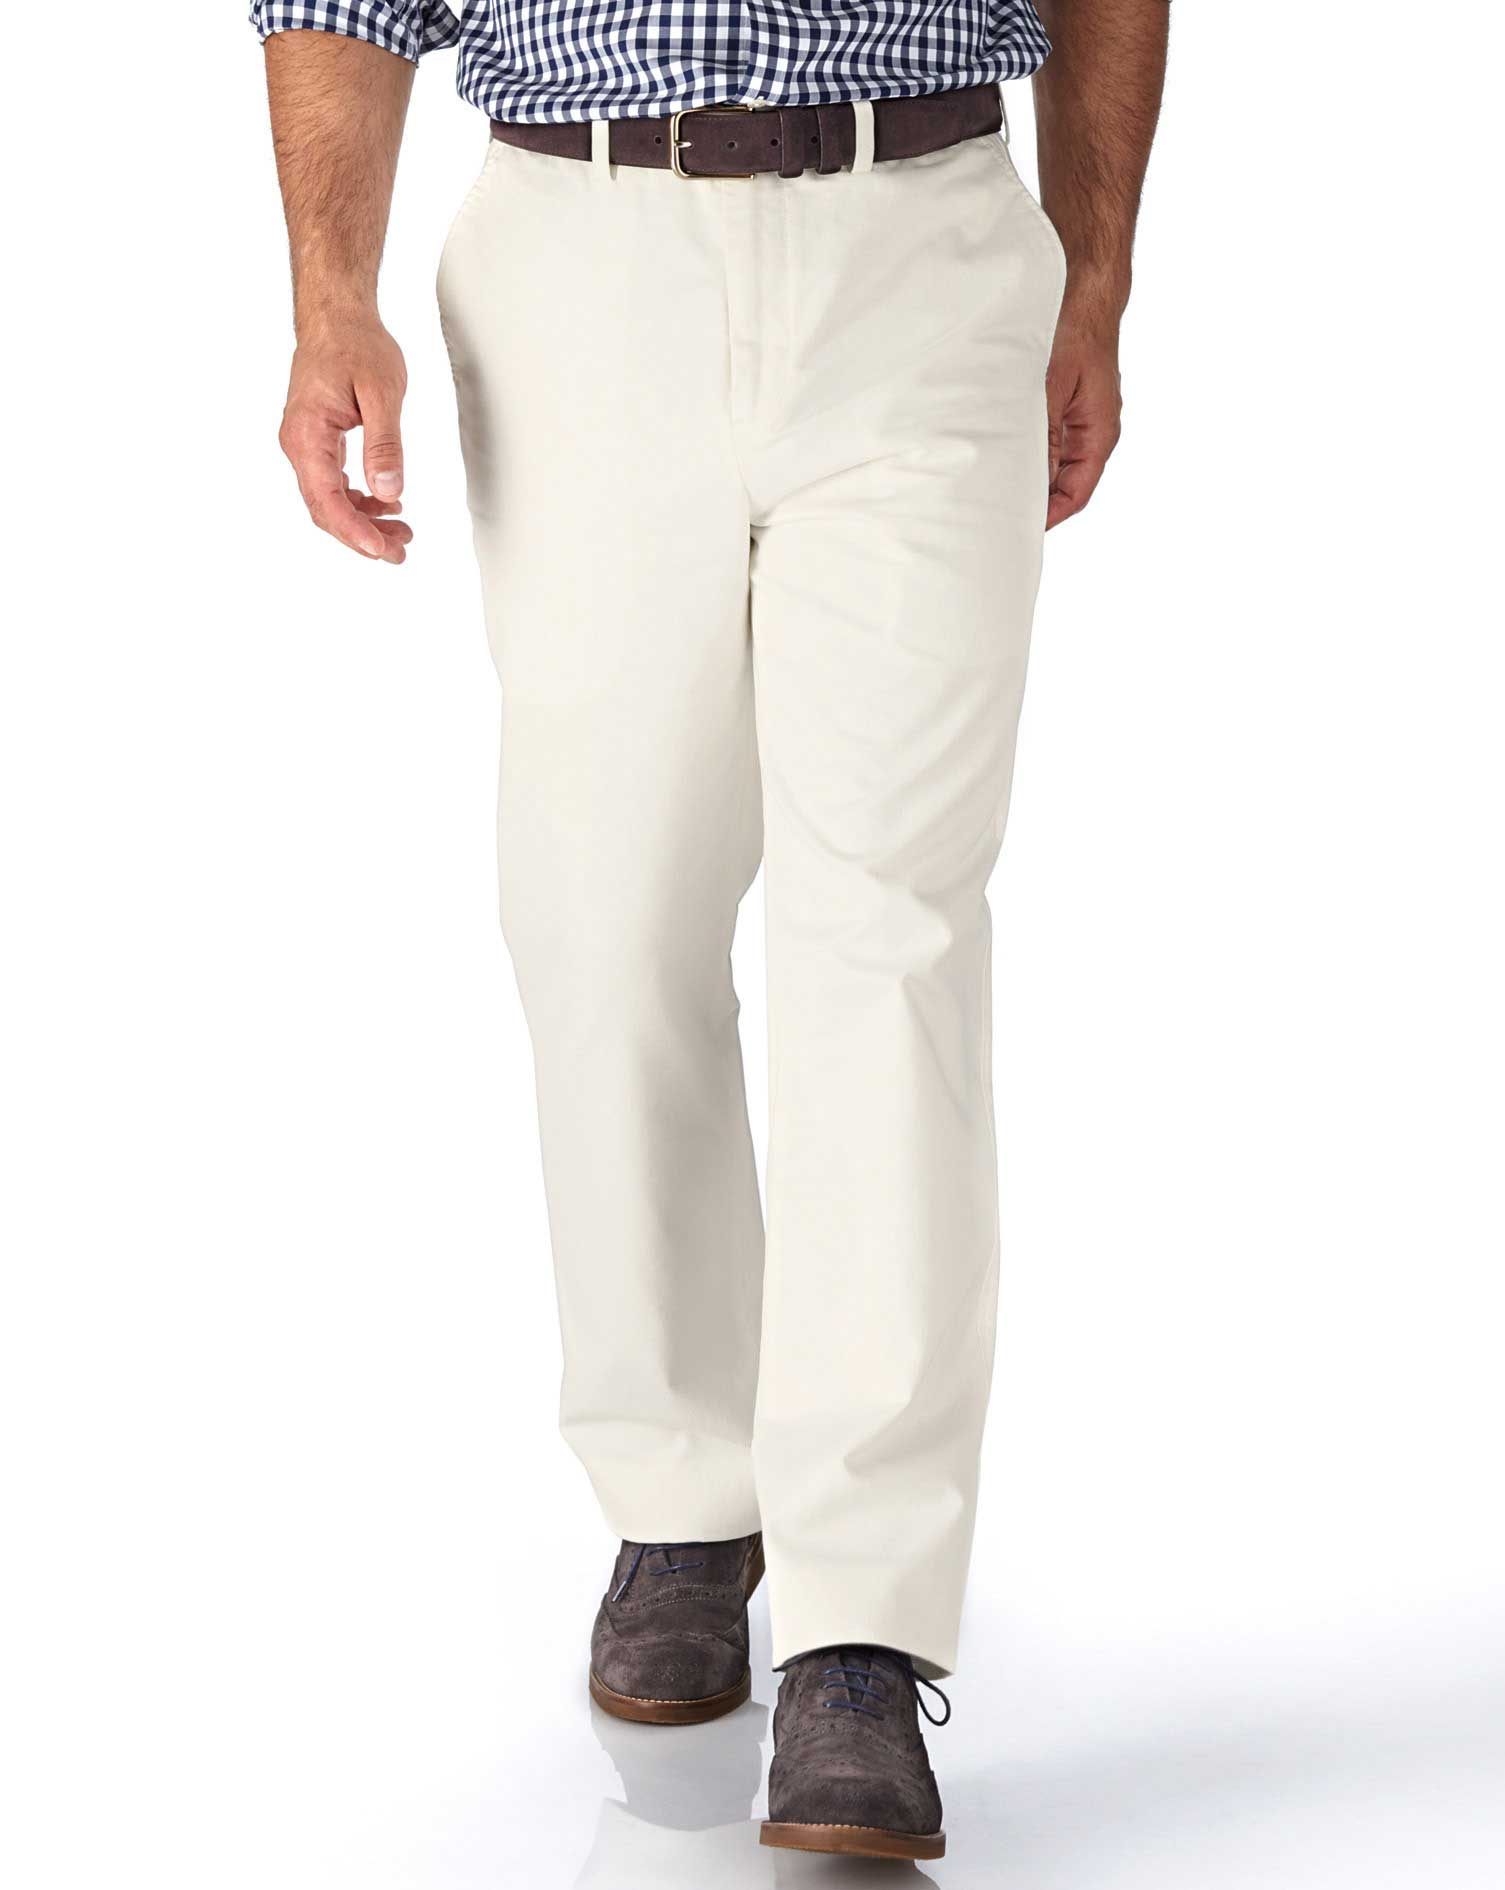 White Classic Fit Flat Front Washed Cotton Chino Trousers Size W38 L29 by Charles Tyrwhitt